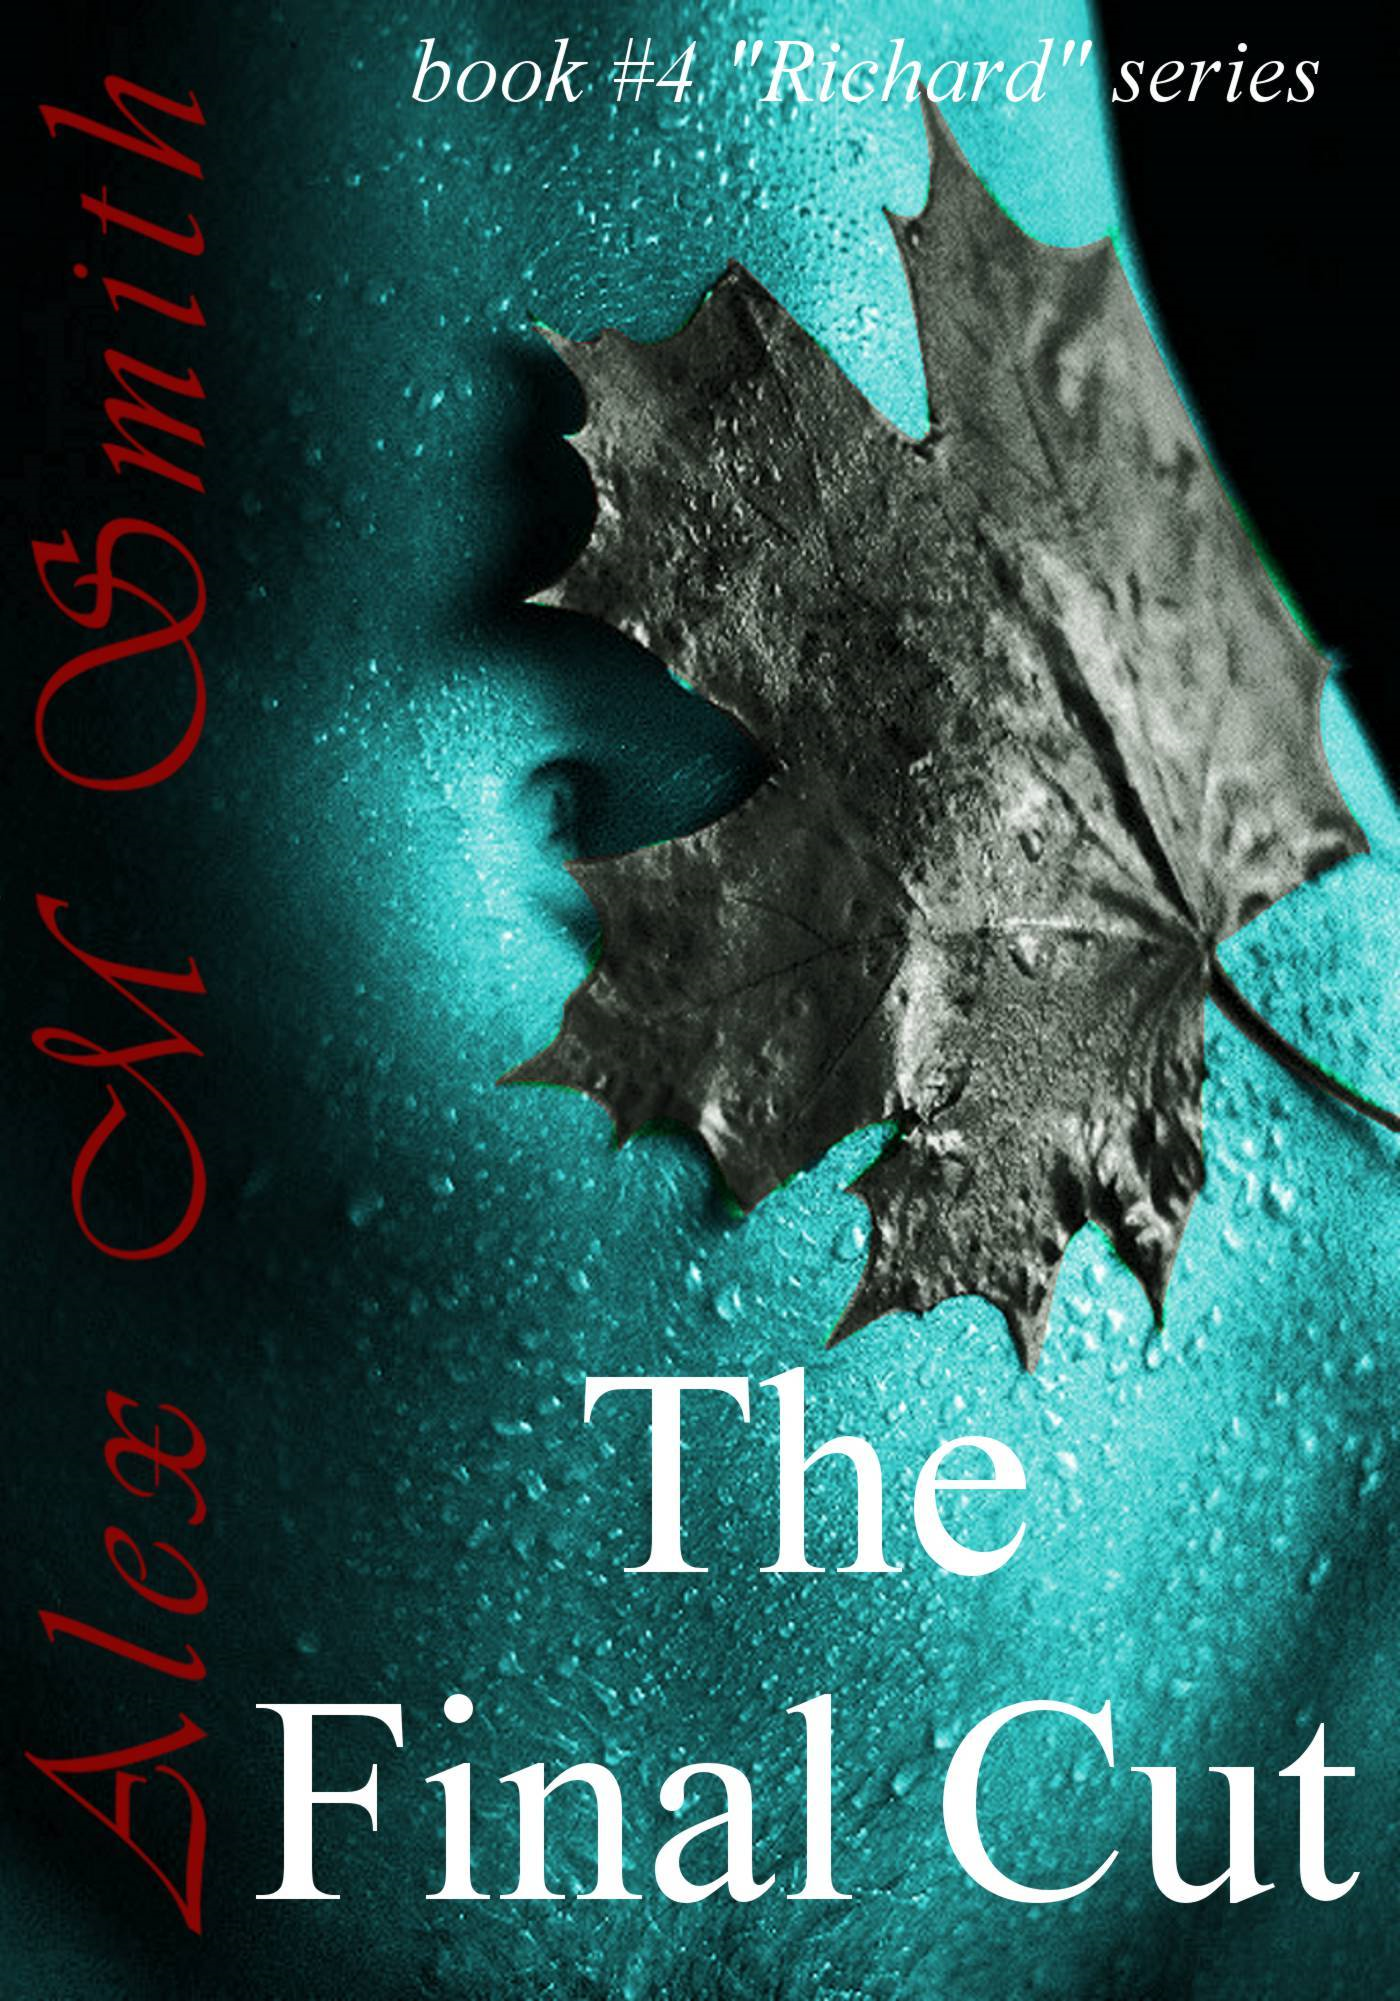 The Final Cut  (Book #4 Richard Series)